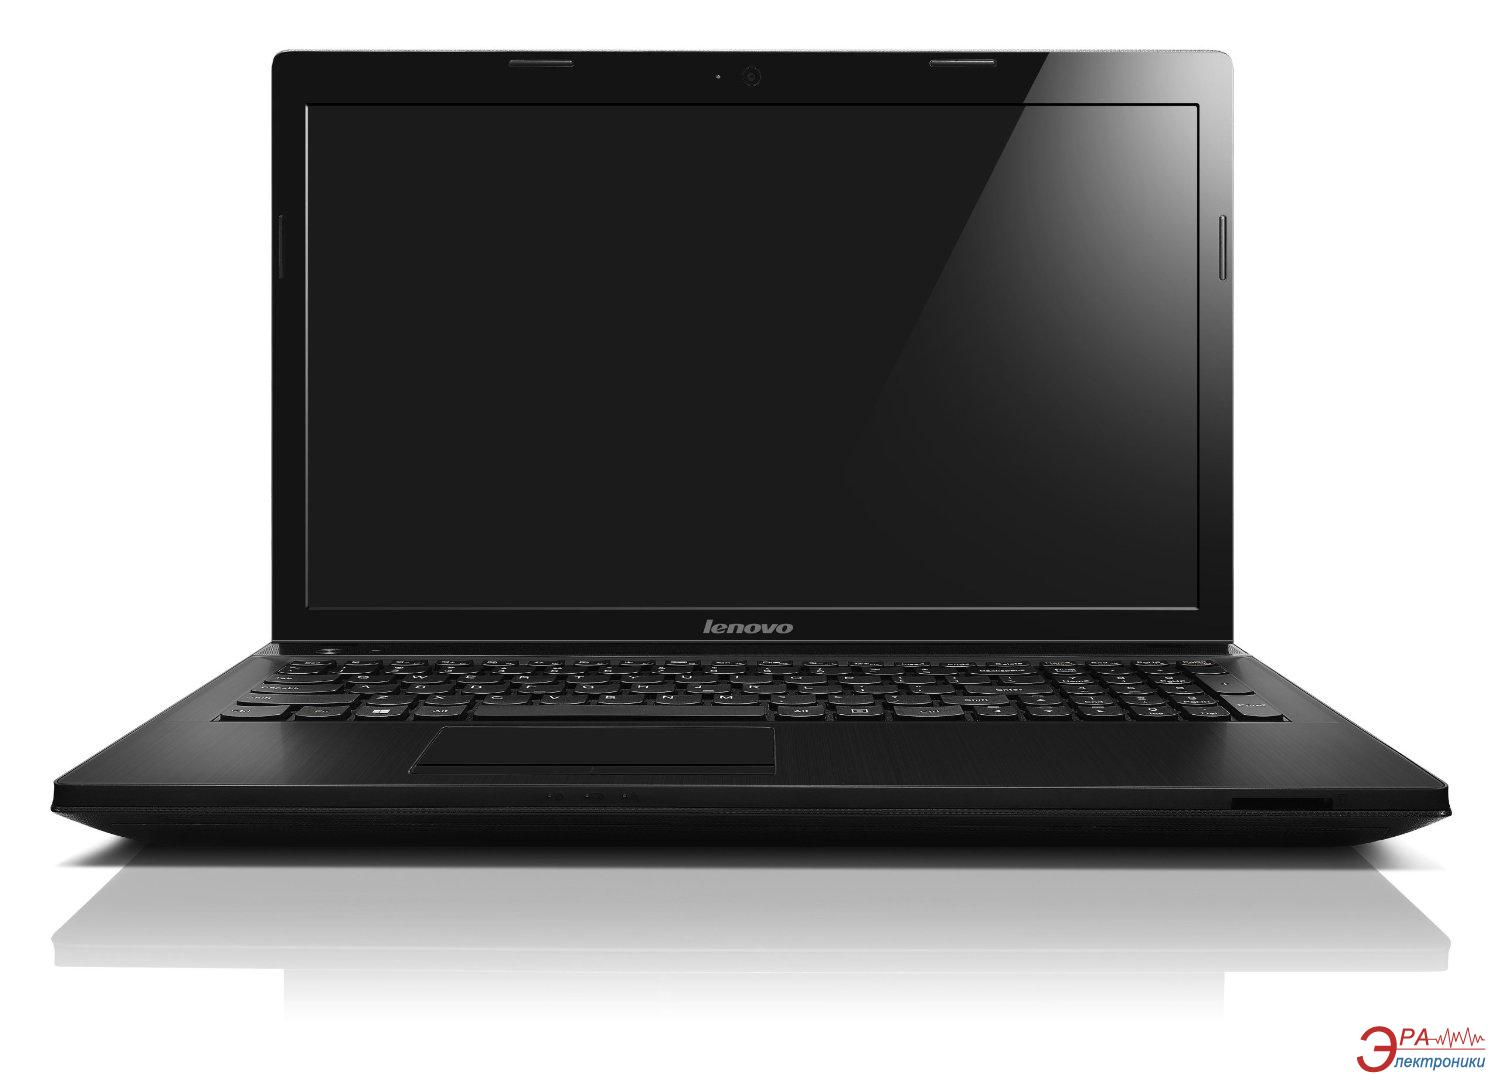 Ноутбук Lenovo IdeaPad G500A (59-391963) Black 15,6